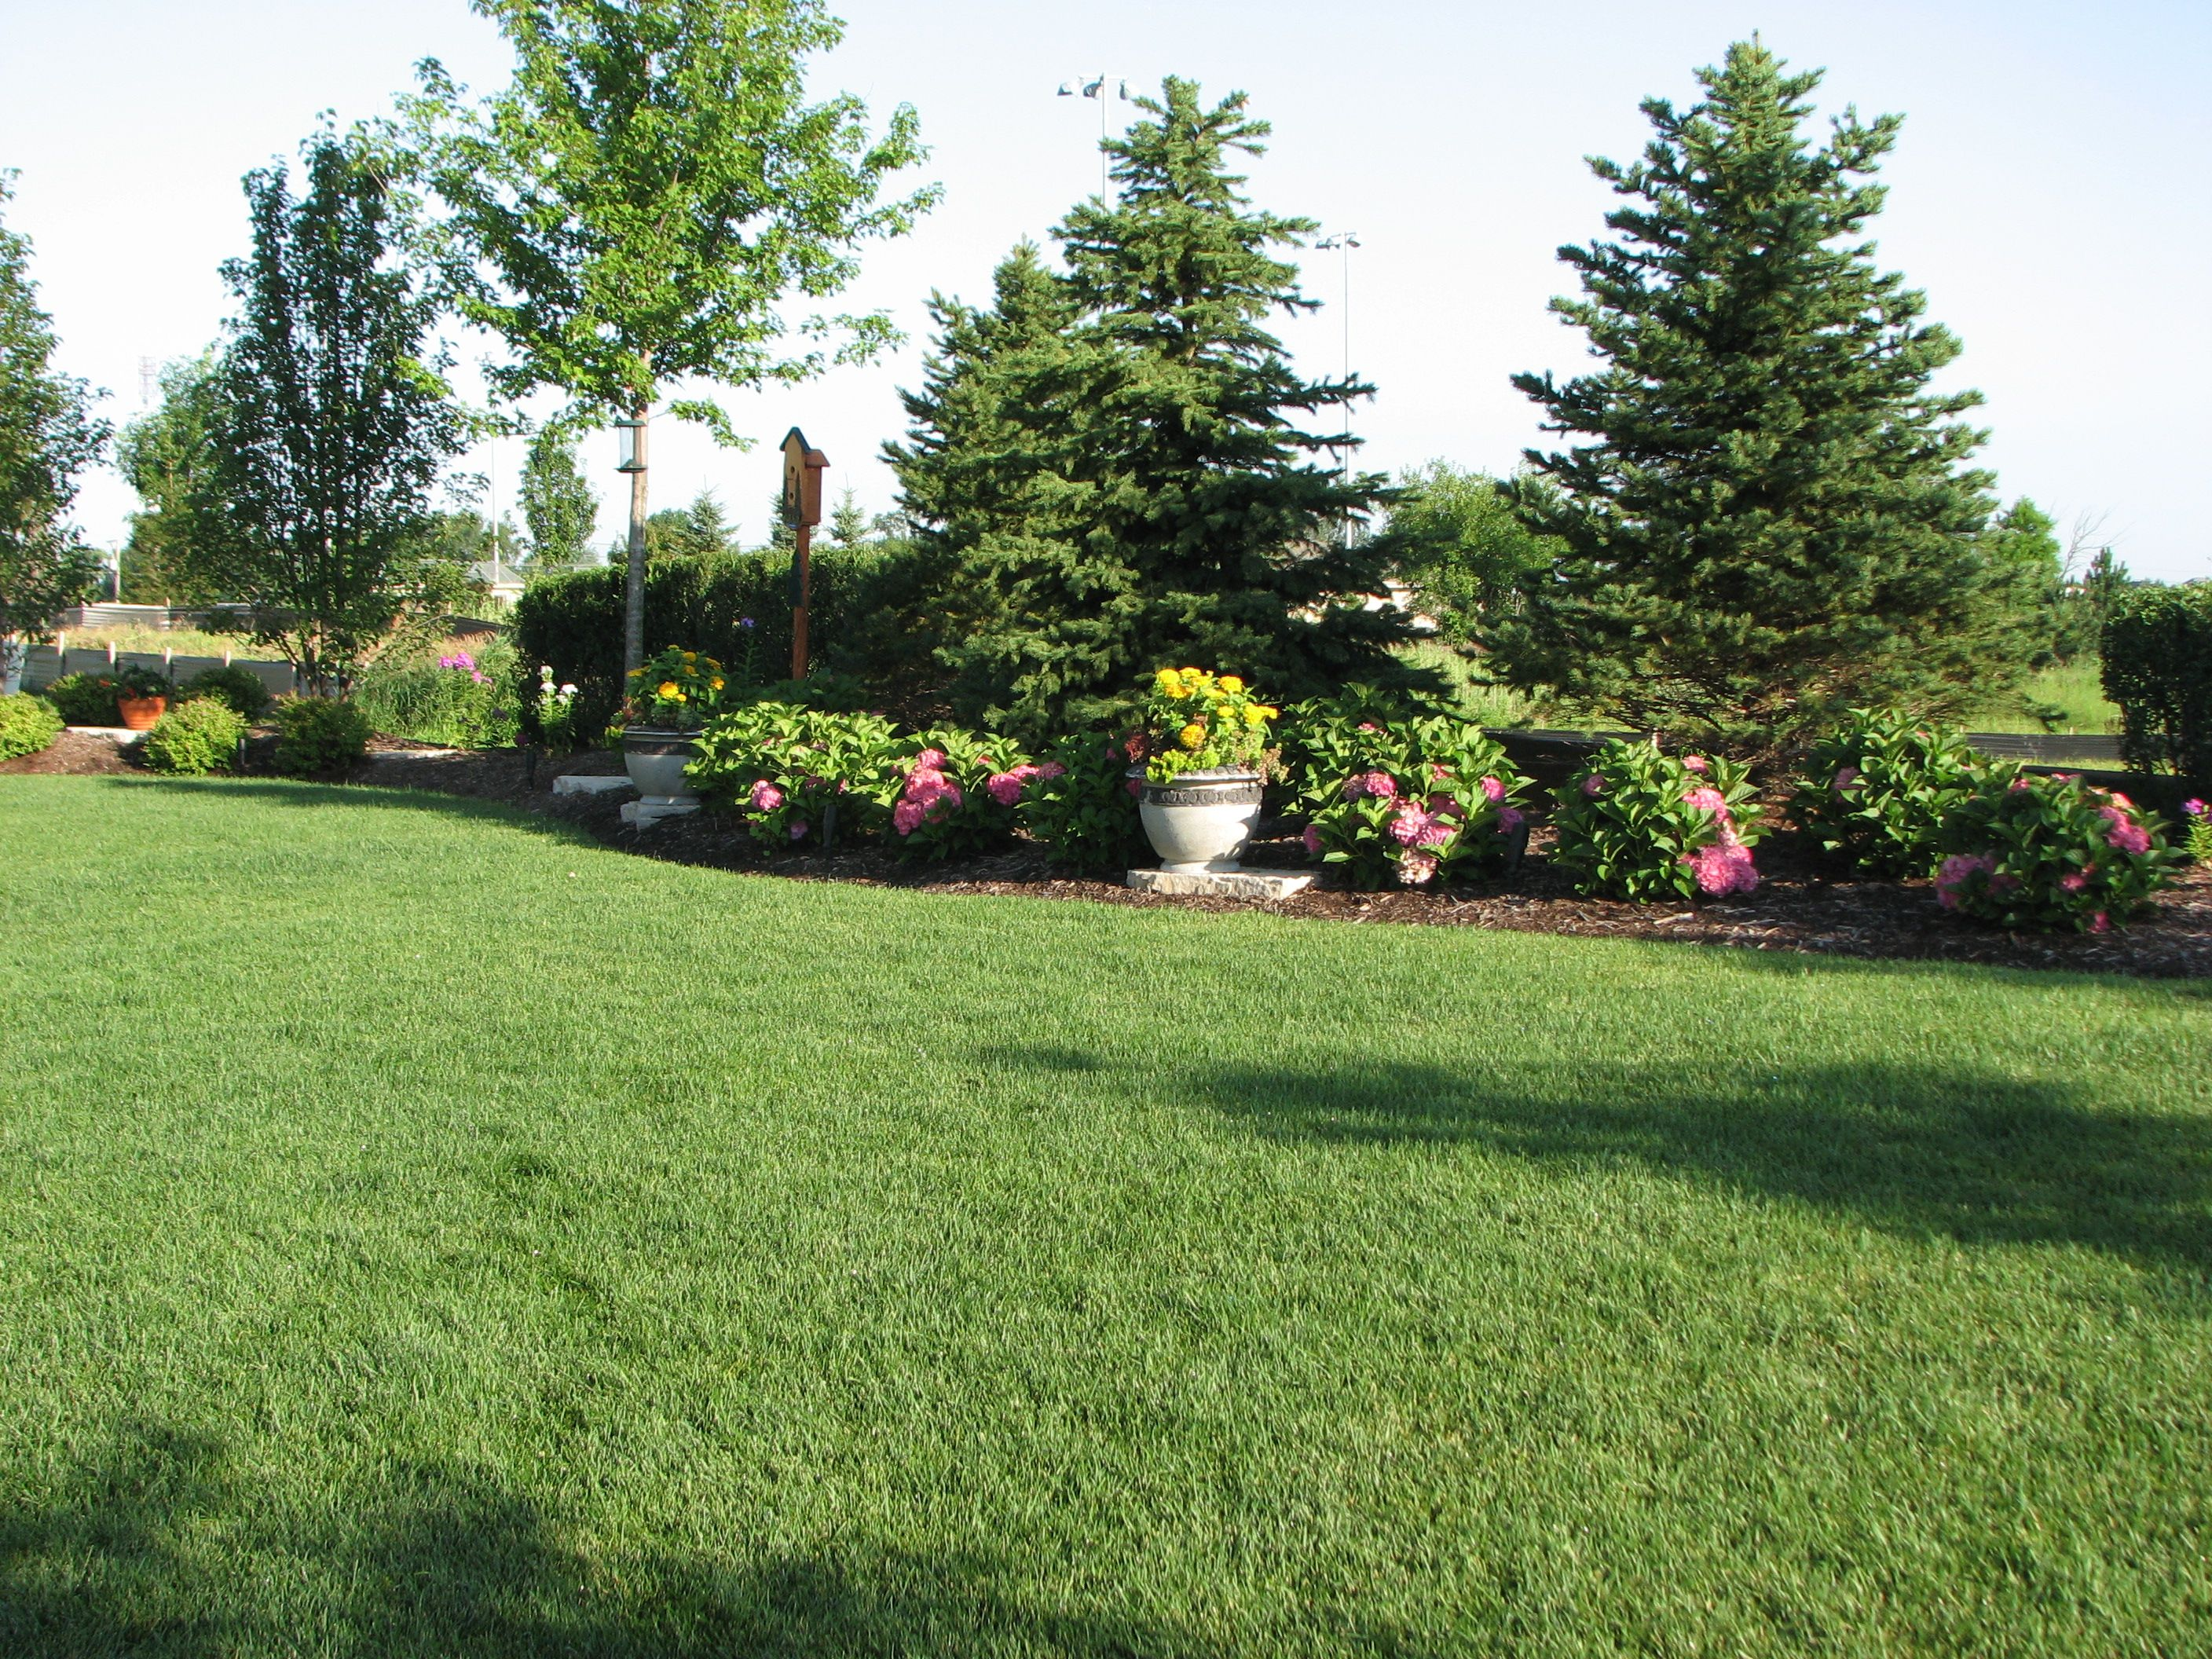 Backyard landscaping for privacy existing home for Backyard privacy landscaping trees